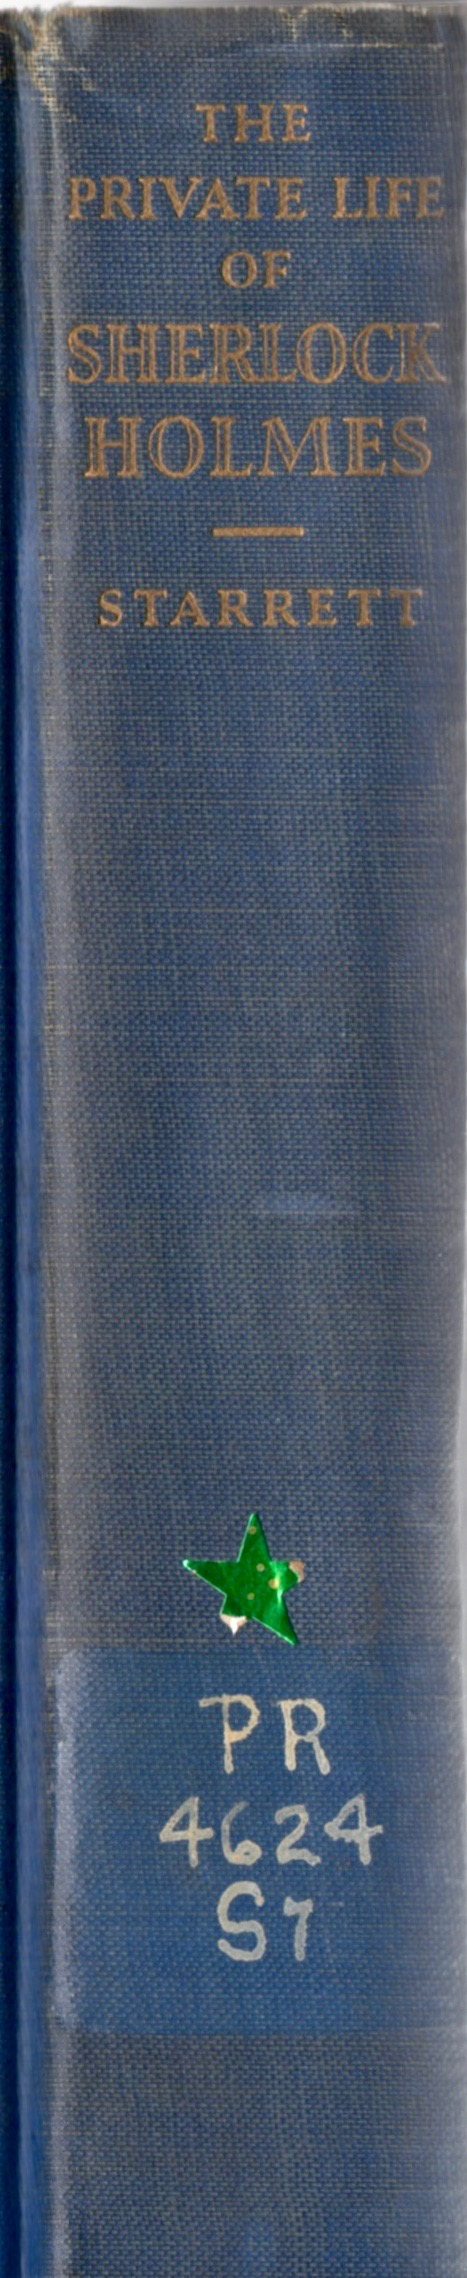 The spine to the copy of  Private Life  that was once in the Haverford College library.